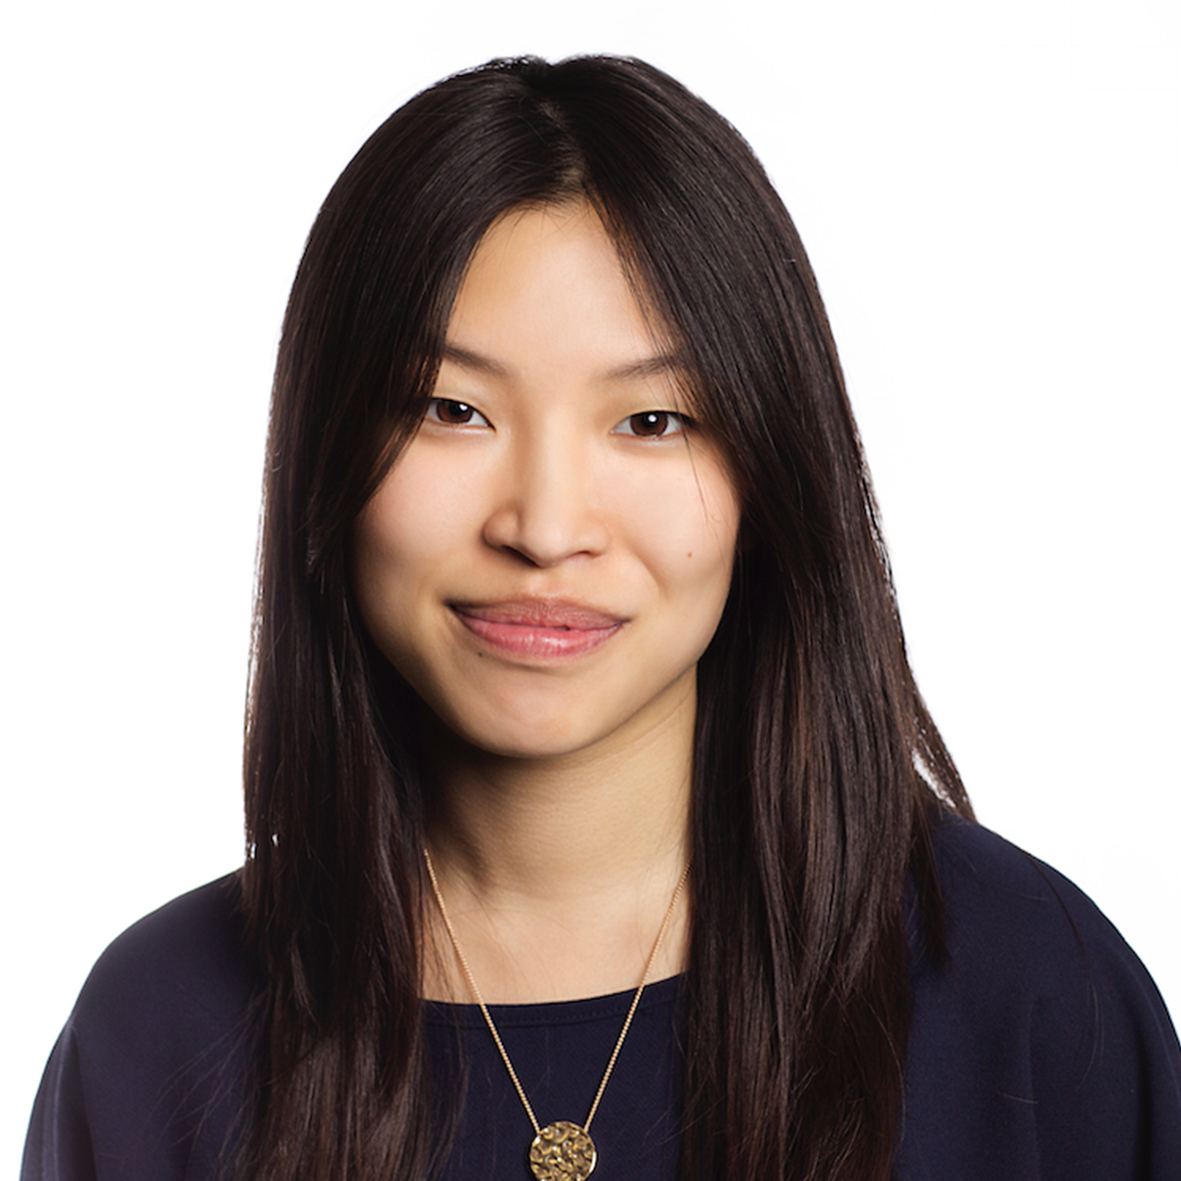 Dawn Li Wan Po,    Portfolio Manager, Julius Baer   Dawn Li Wan Po is the lead Portfolio Manager for Julius Baer's Global Equity Income mandate in the Investment Management division of Julius Baer. Dawn is also Head of Equities in the UK Portfolio Construction Team, which is responsible for the construction of models for the management of the discretionary clients of the Julius Baer London office. Dawn works with a number of our leading relationship managers and clients.